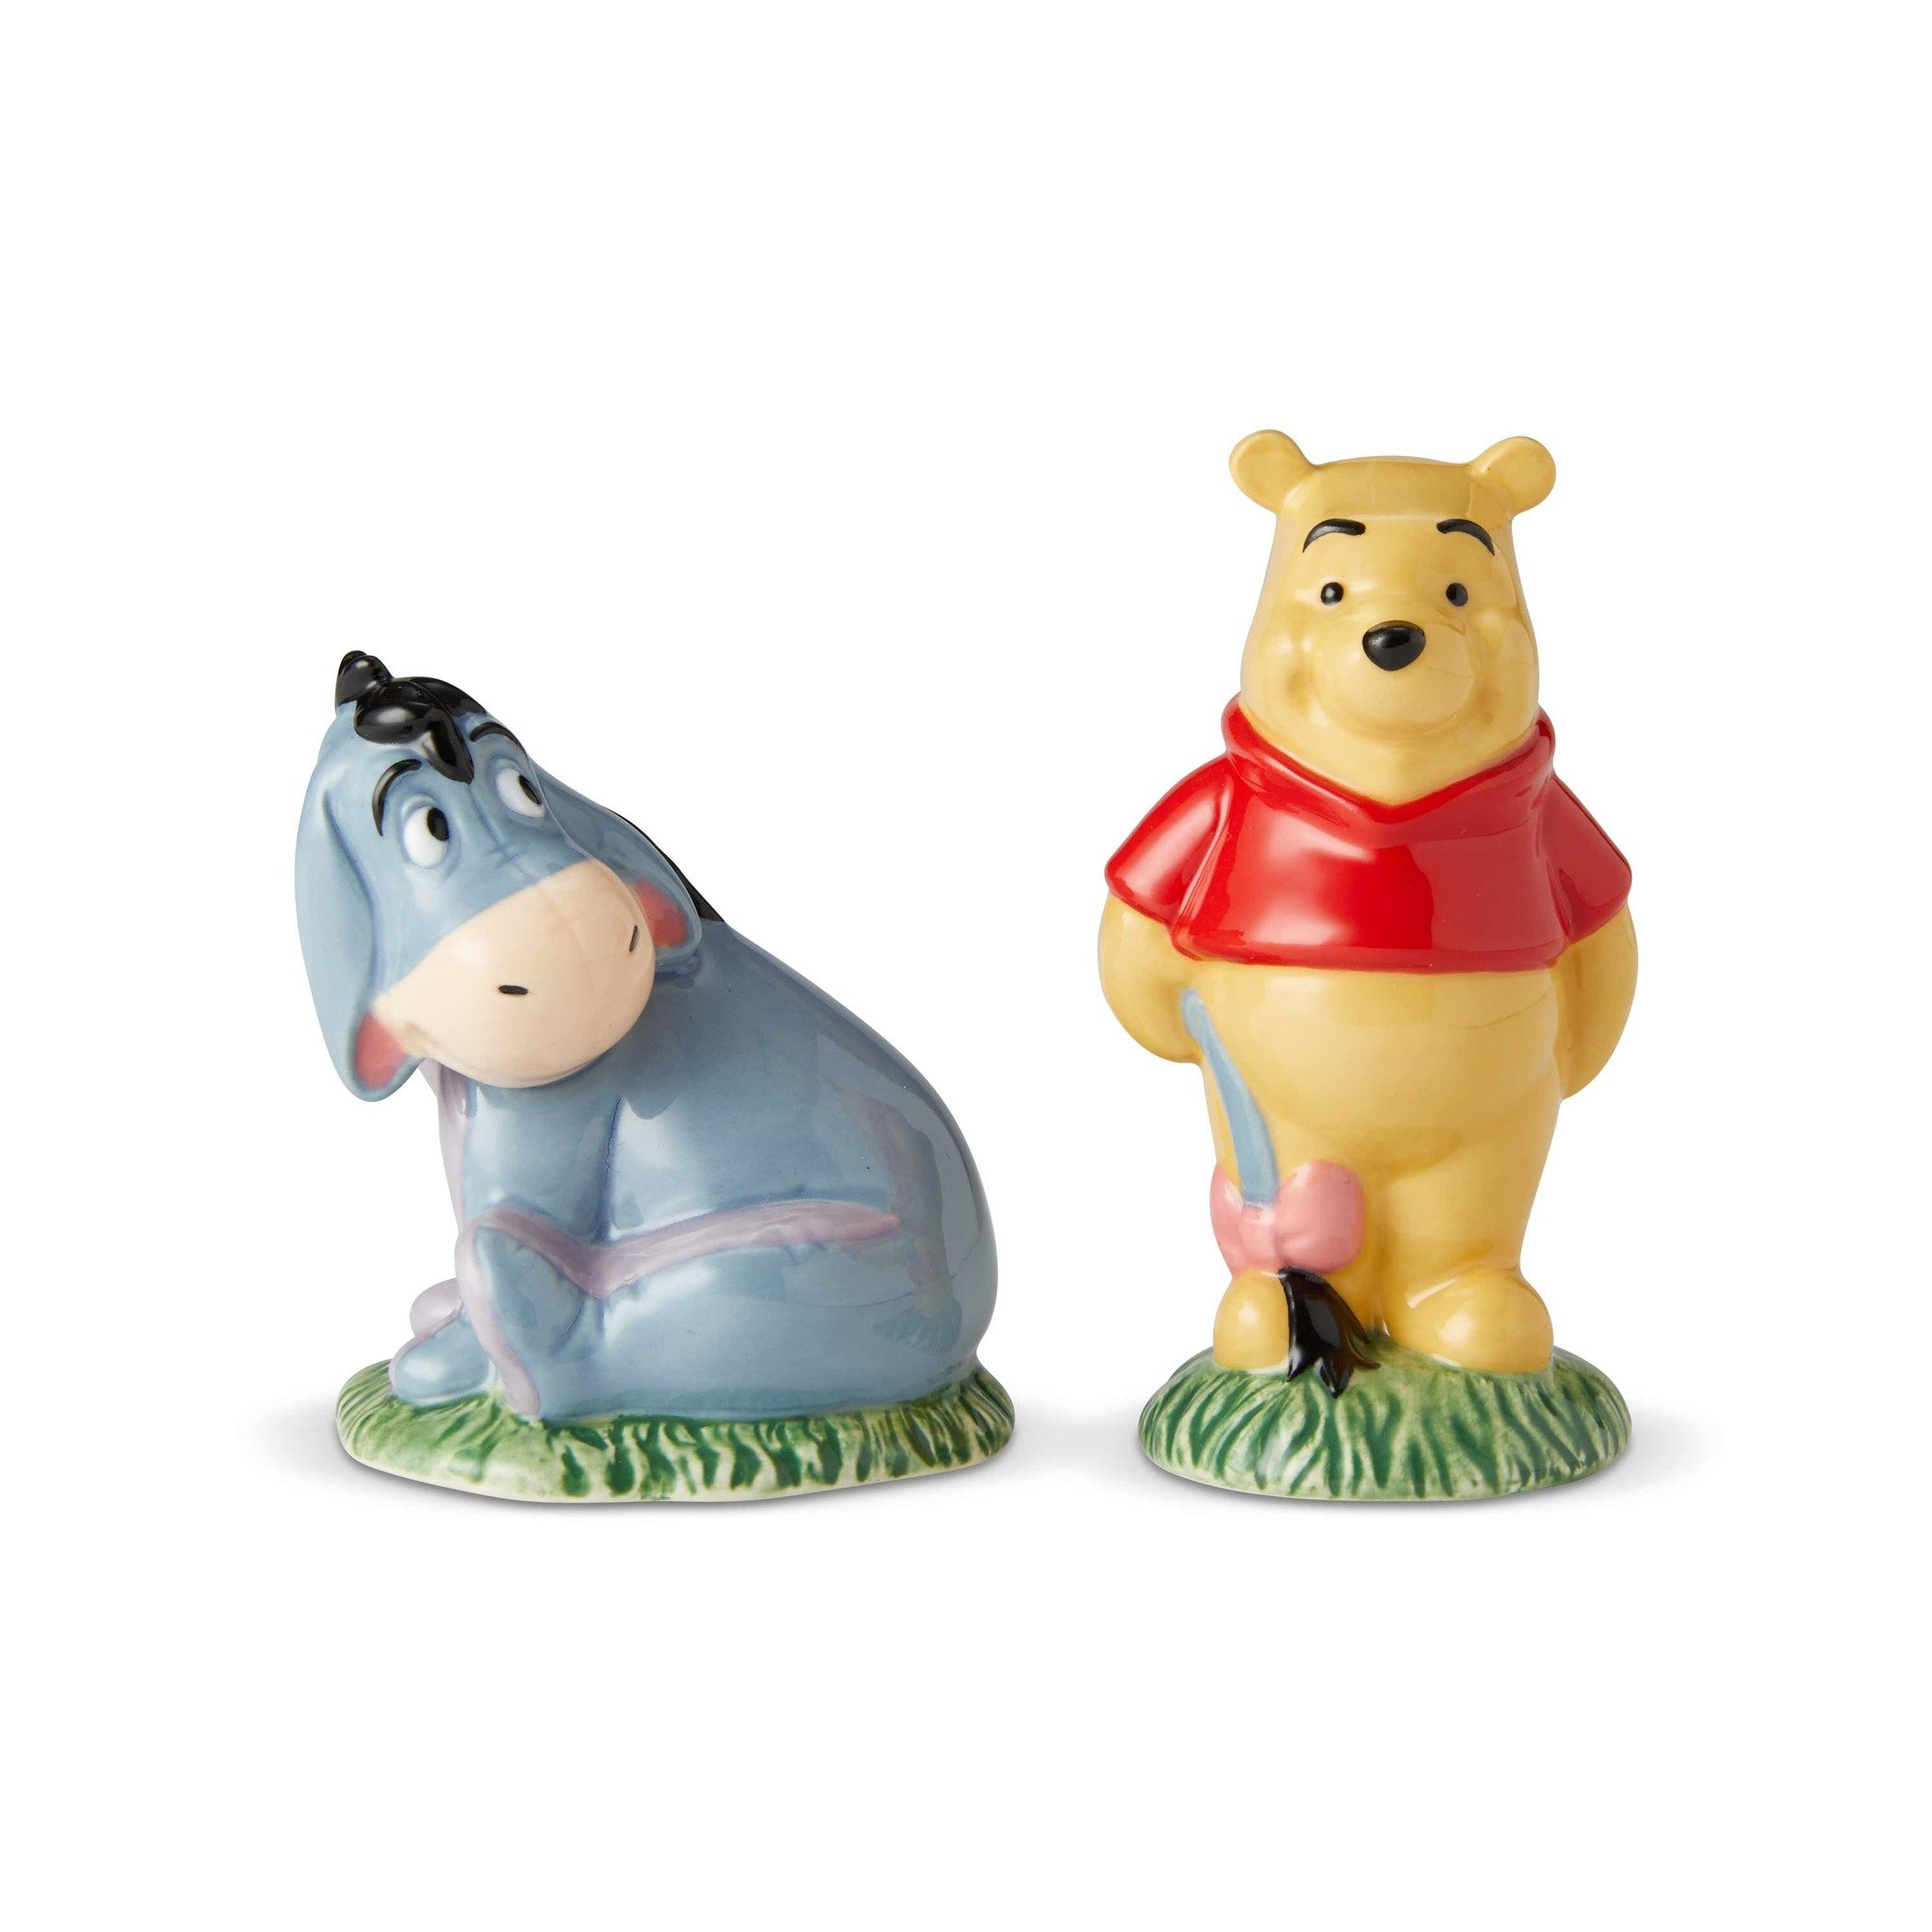 Enjoyable Walt Disney Winnie The Pooh And Eeyore Ceramic Salt Pepper Shakers Set Boxed Andrewgaddart Wooden Chair Designs For Living Room Andrewgaddartcom